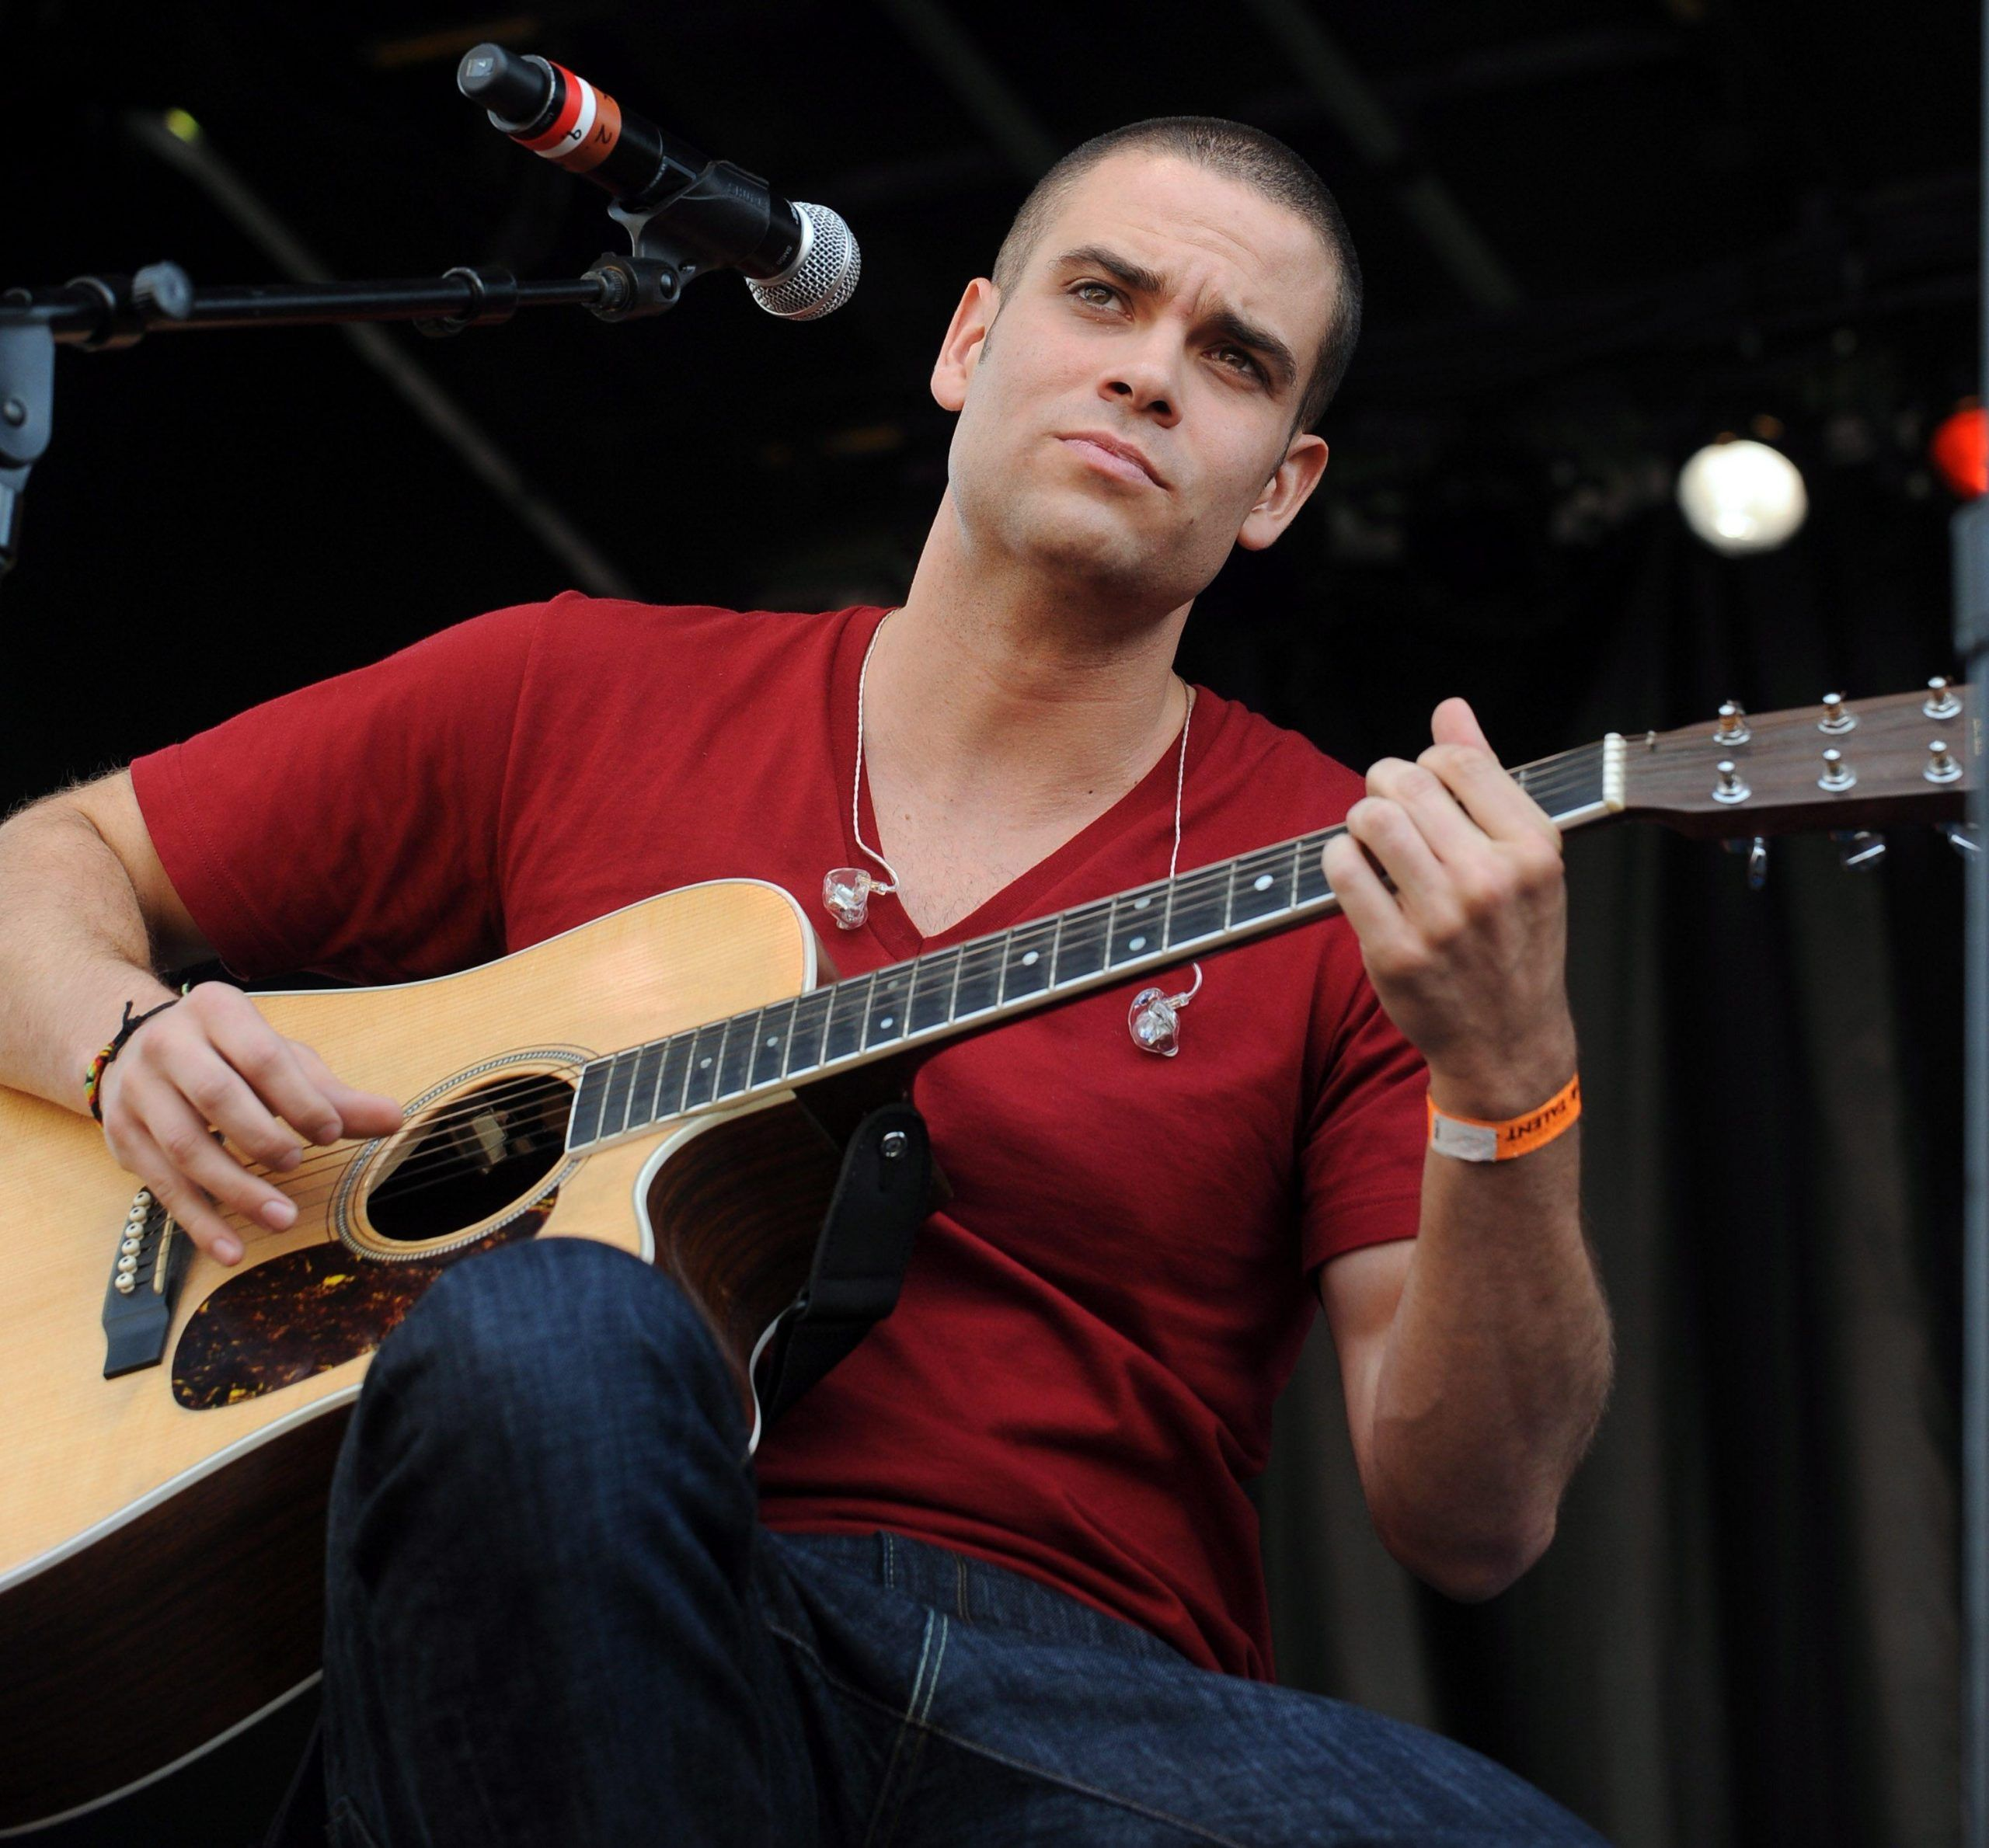 Tv: muore a Los Angeles Mark Salling, ex star di Glee